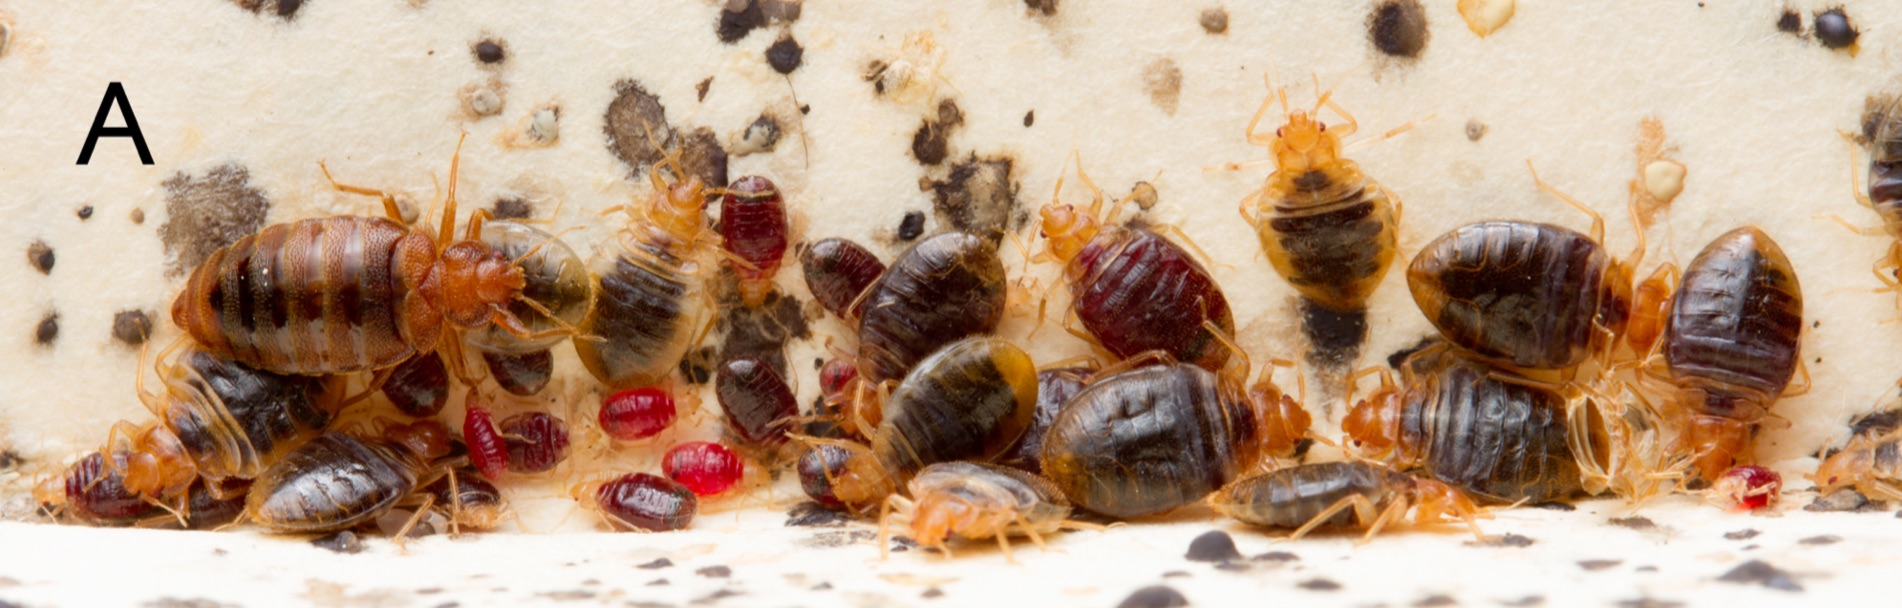 More Nightmare Fuel Bedbugs Create Cesspool Of Poop And Histamine